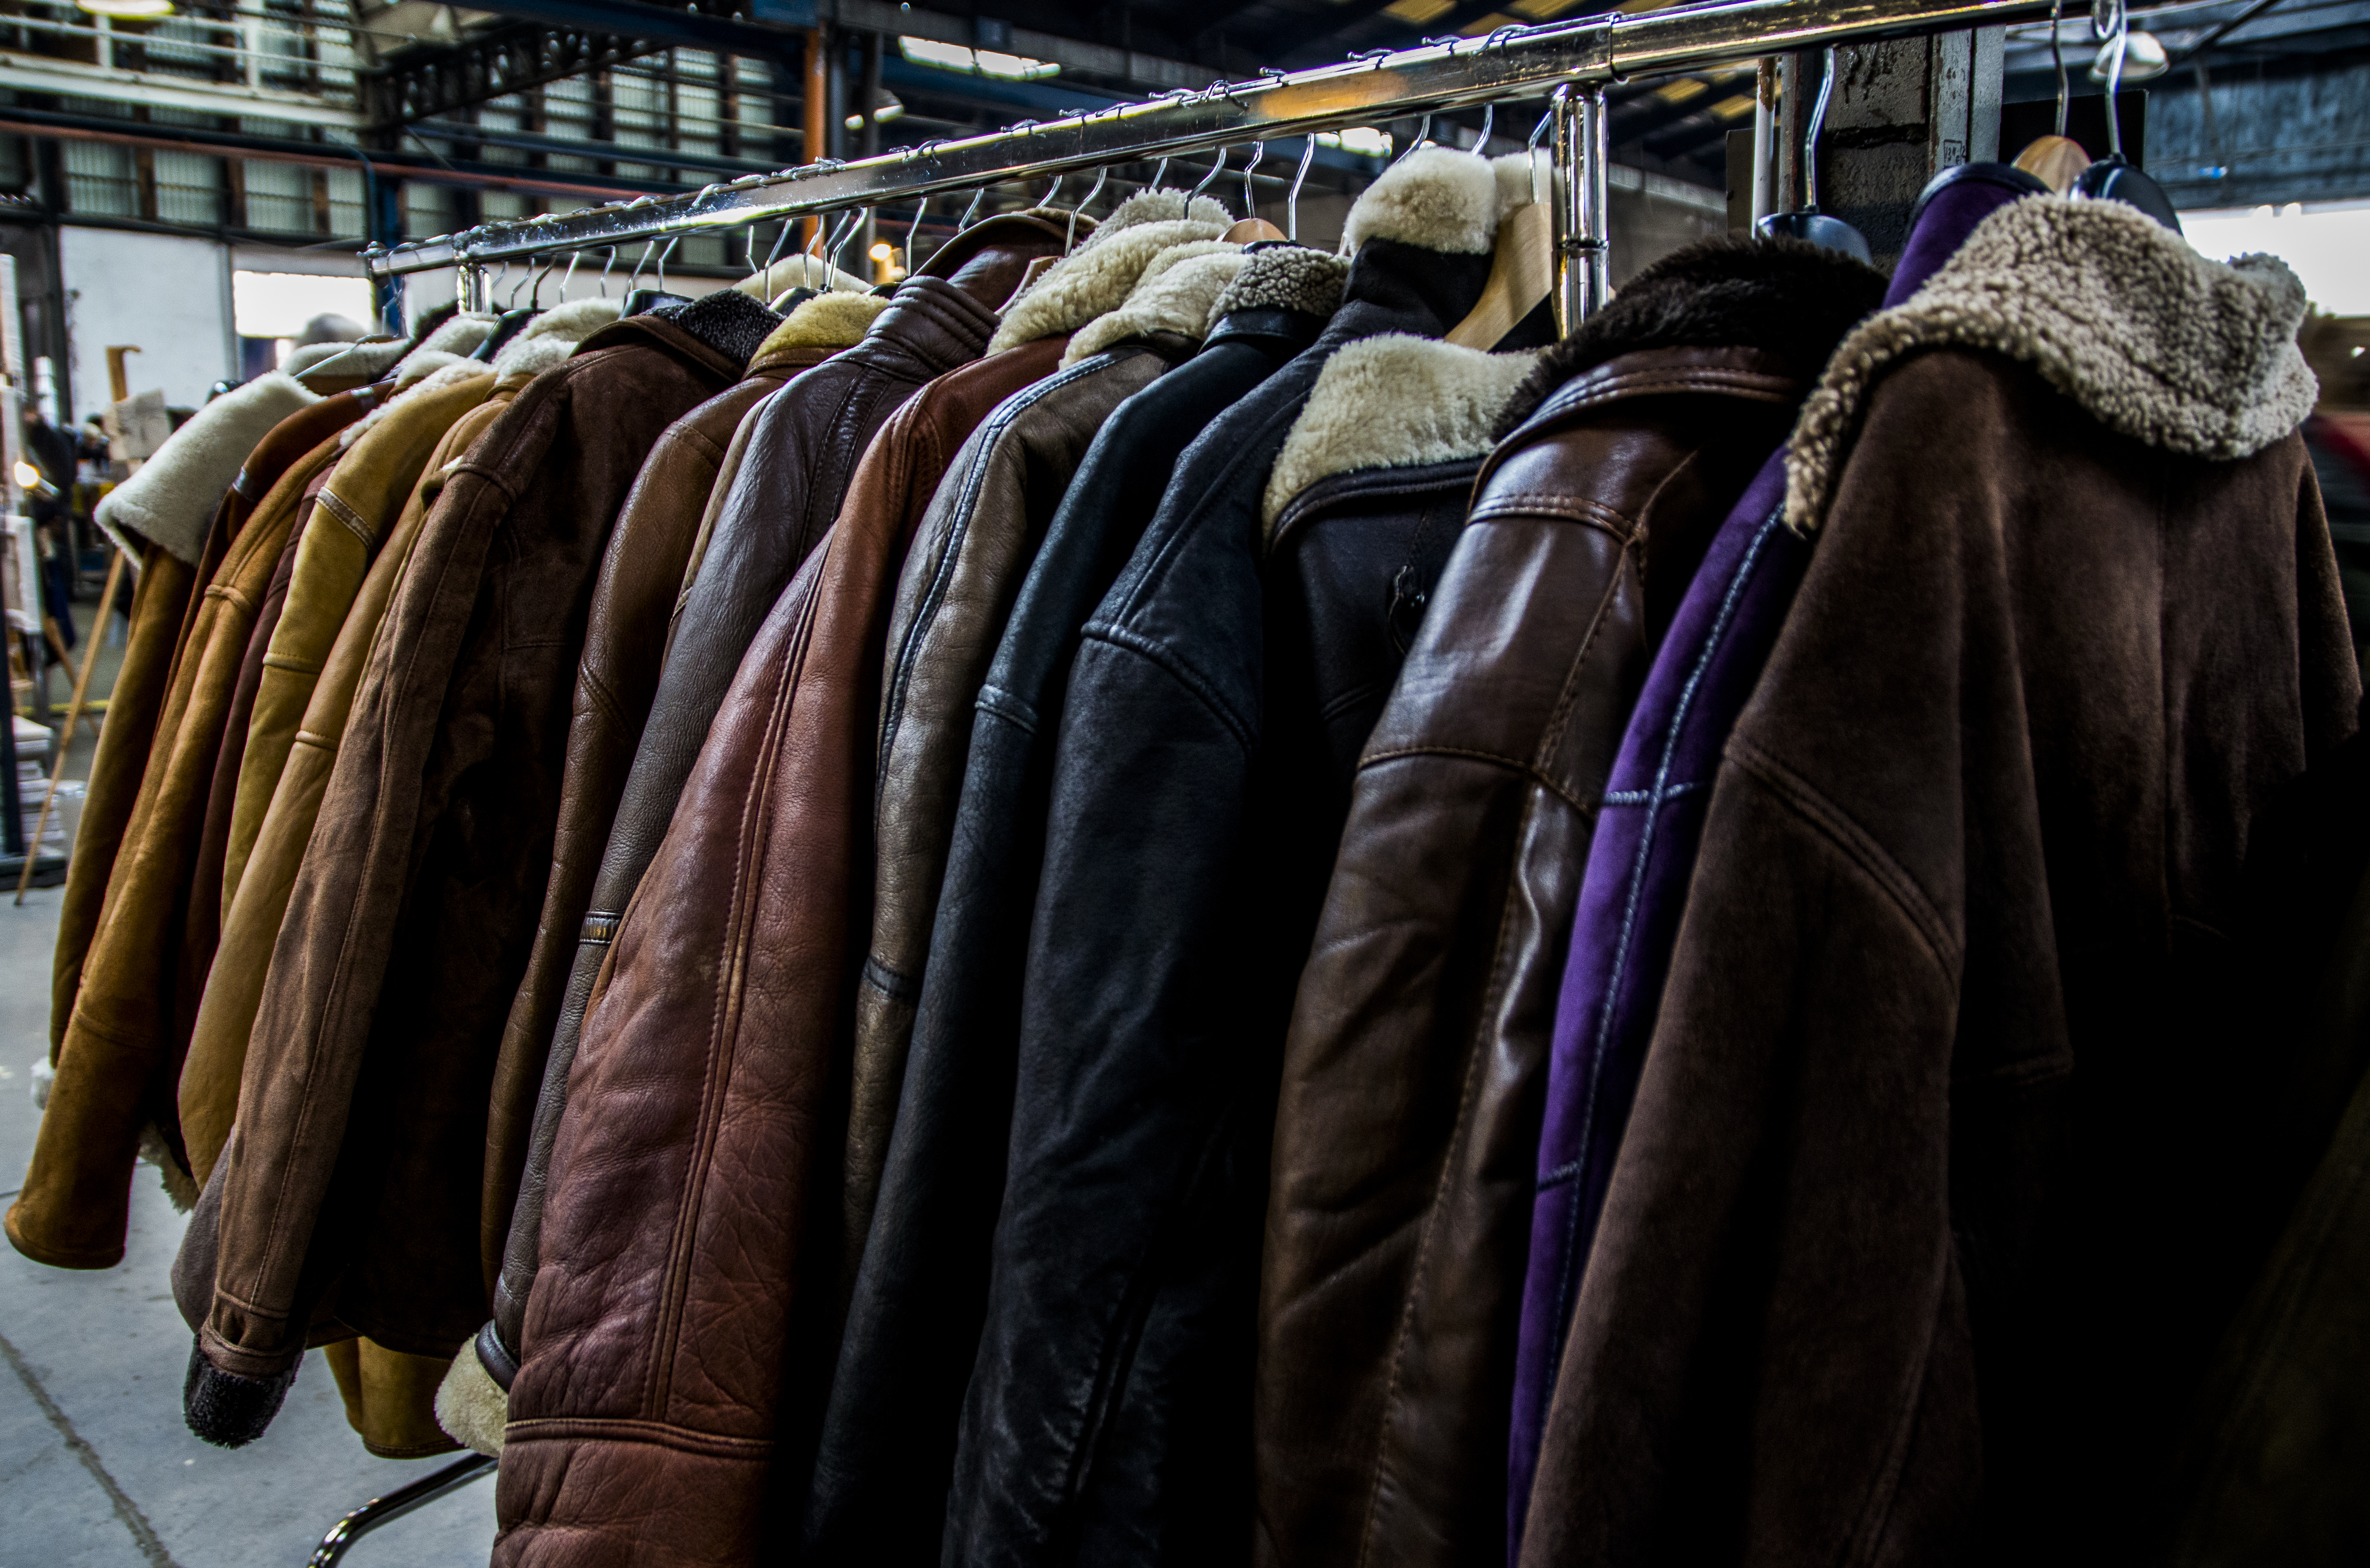 A rack of leather jackets in a consignment store in Milan, Italy.